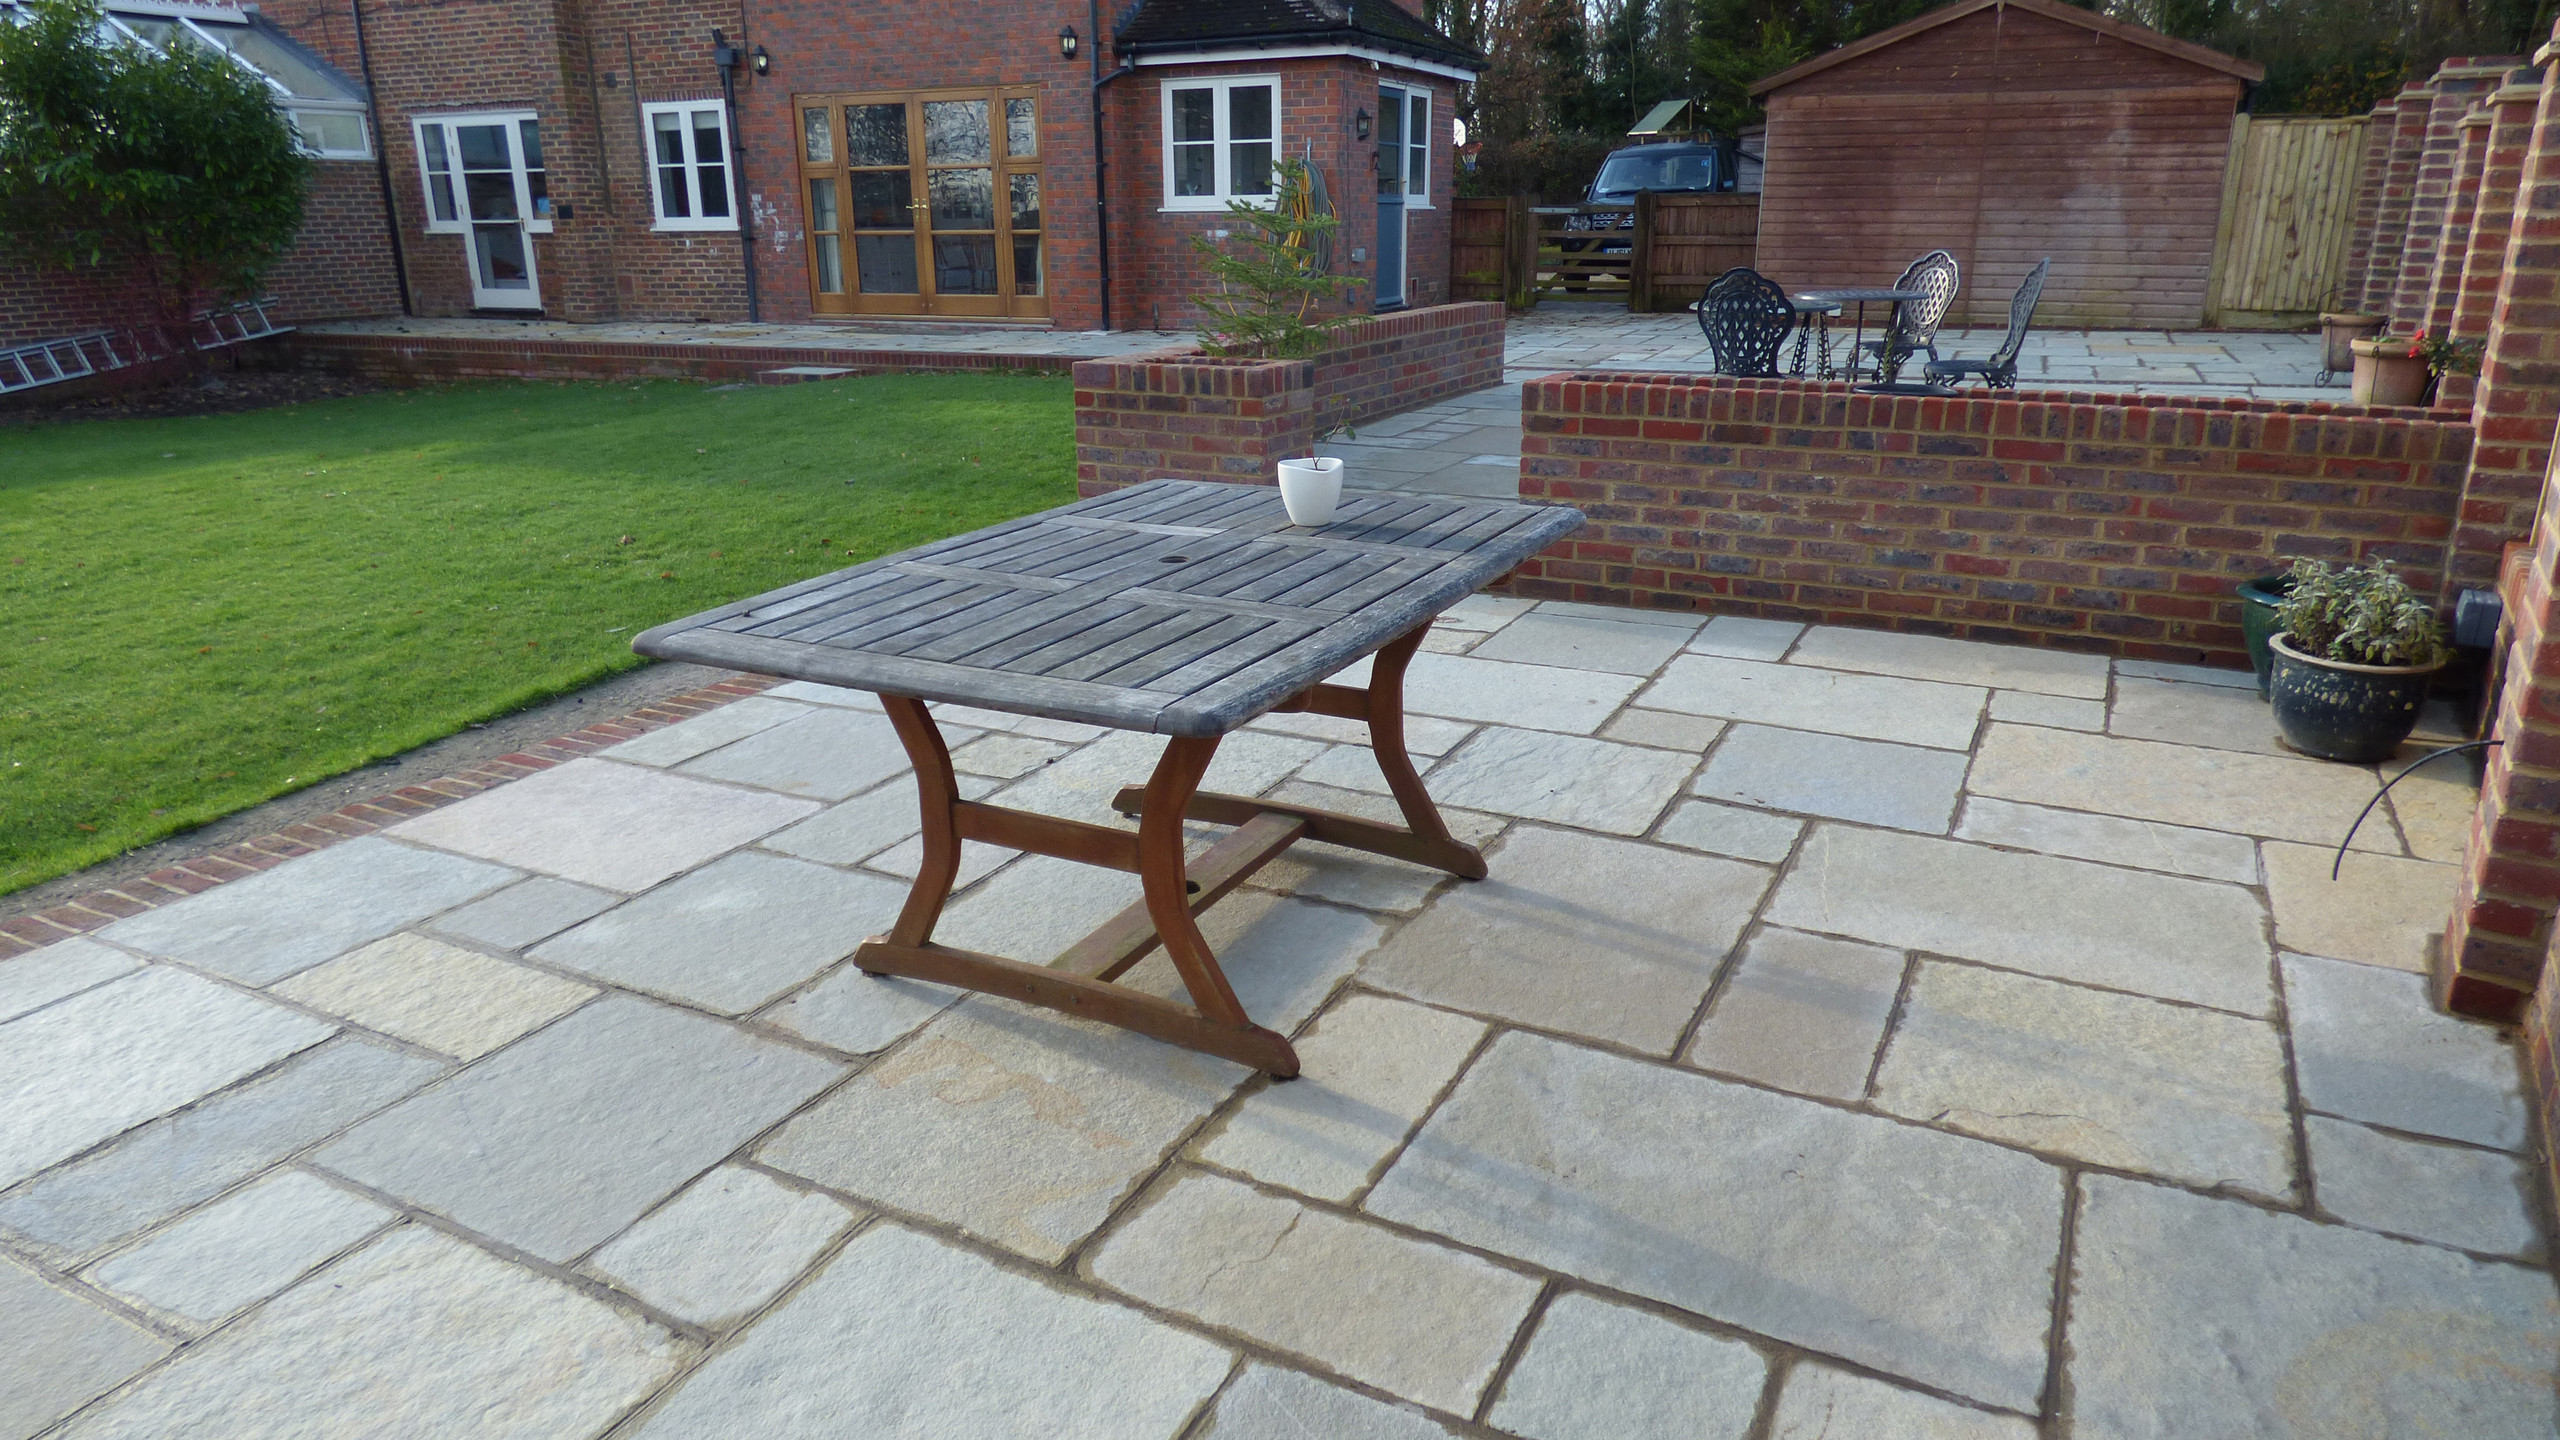 Installation of a Brett Limestone Patio with brick edging, retaining walls and flowerbeds in Sevenoaks